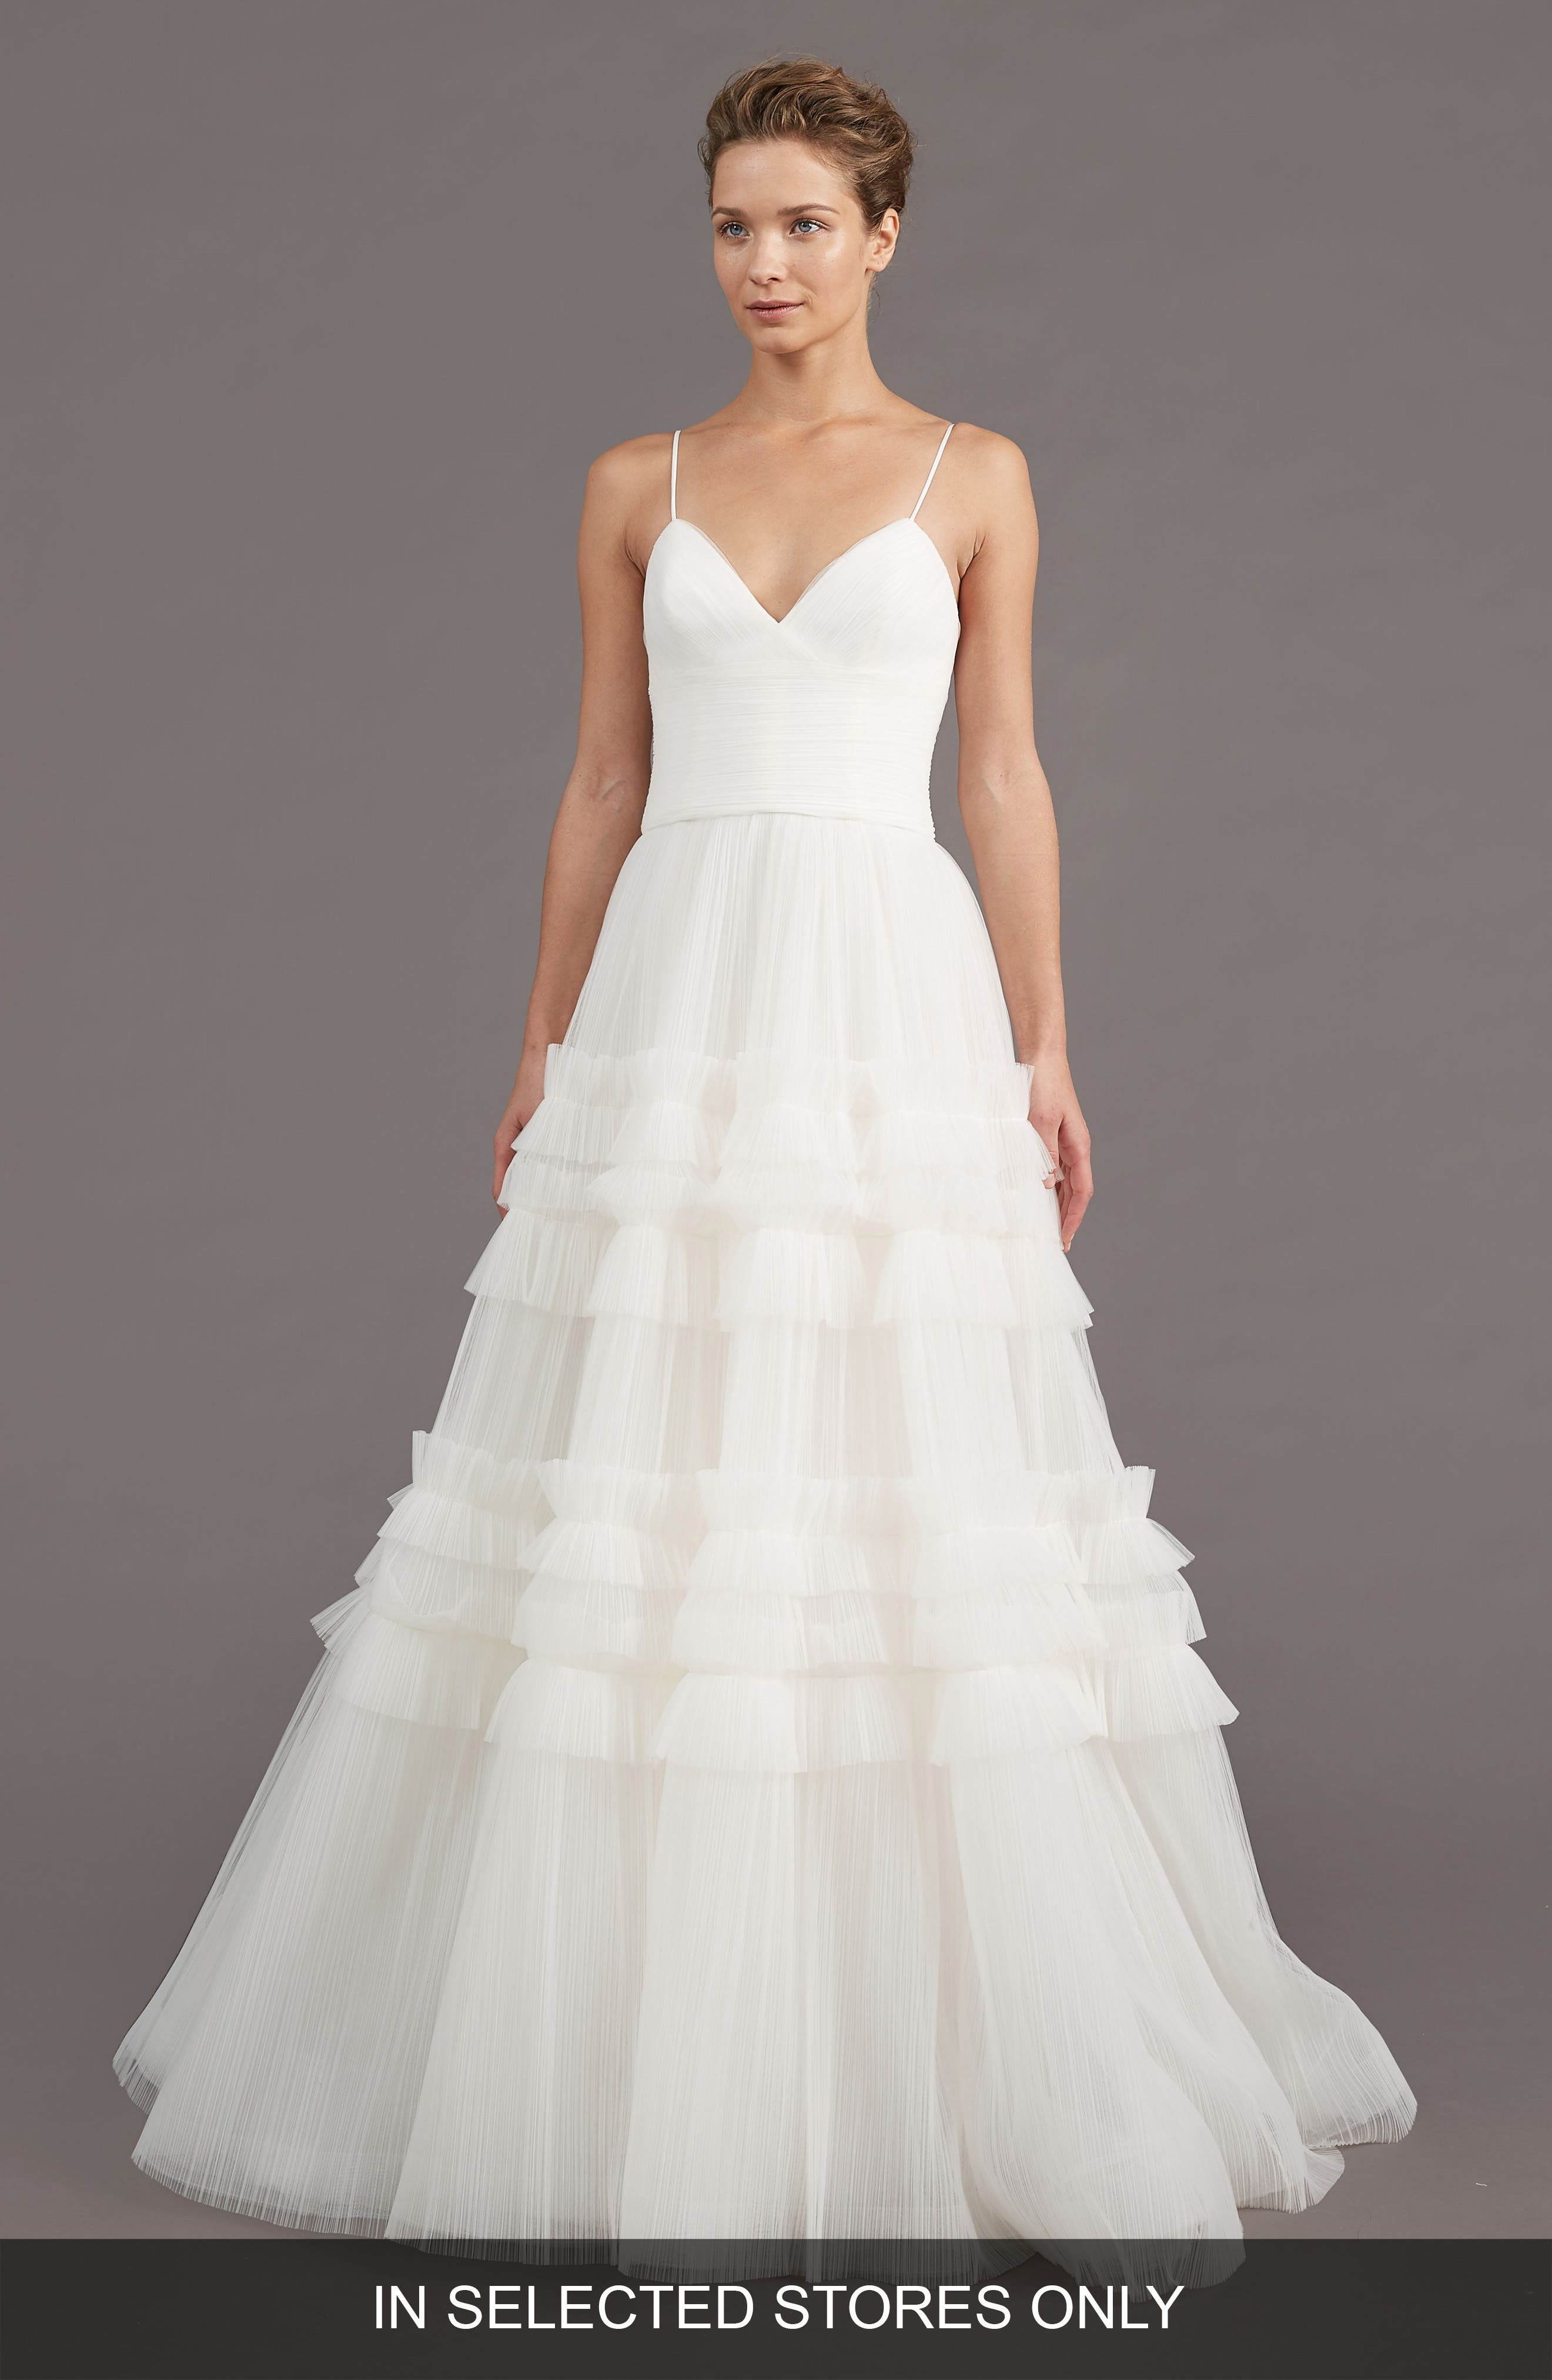 Saylor Ruffle A-Line Gown,                             Main thumbnail 1, color,                             IVORY